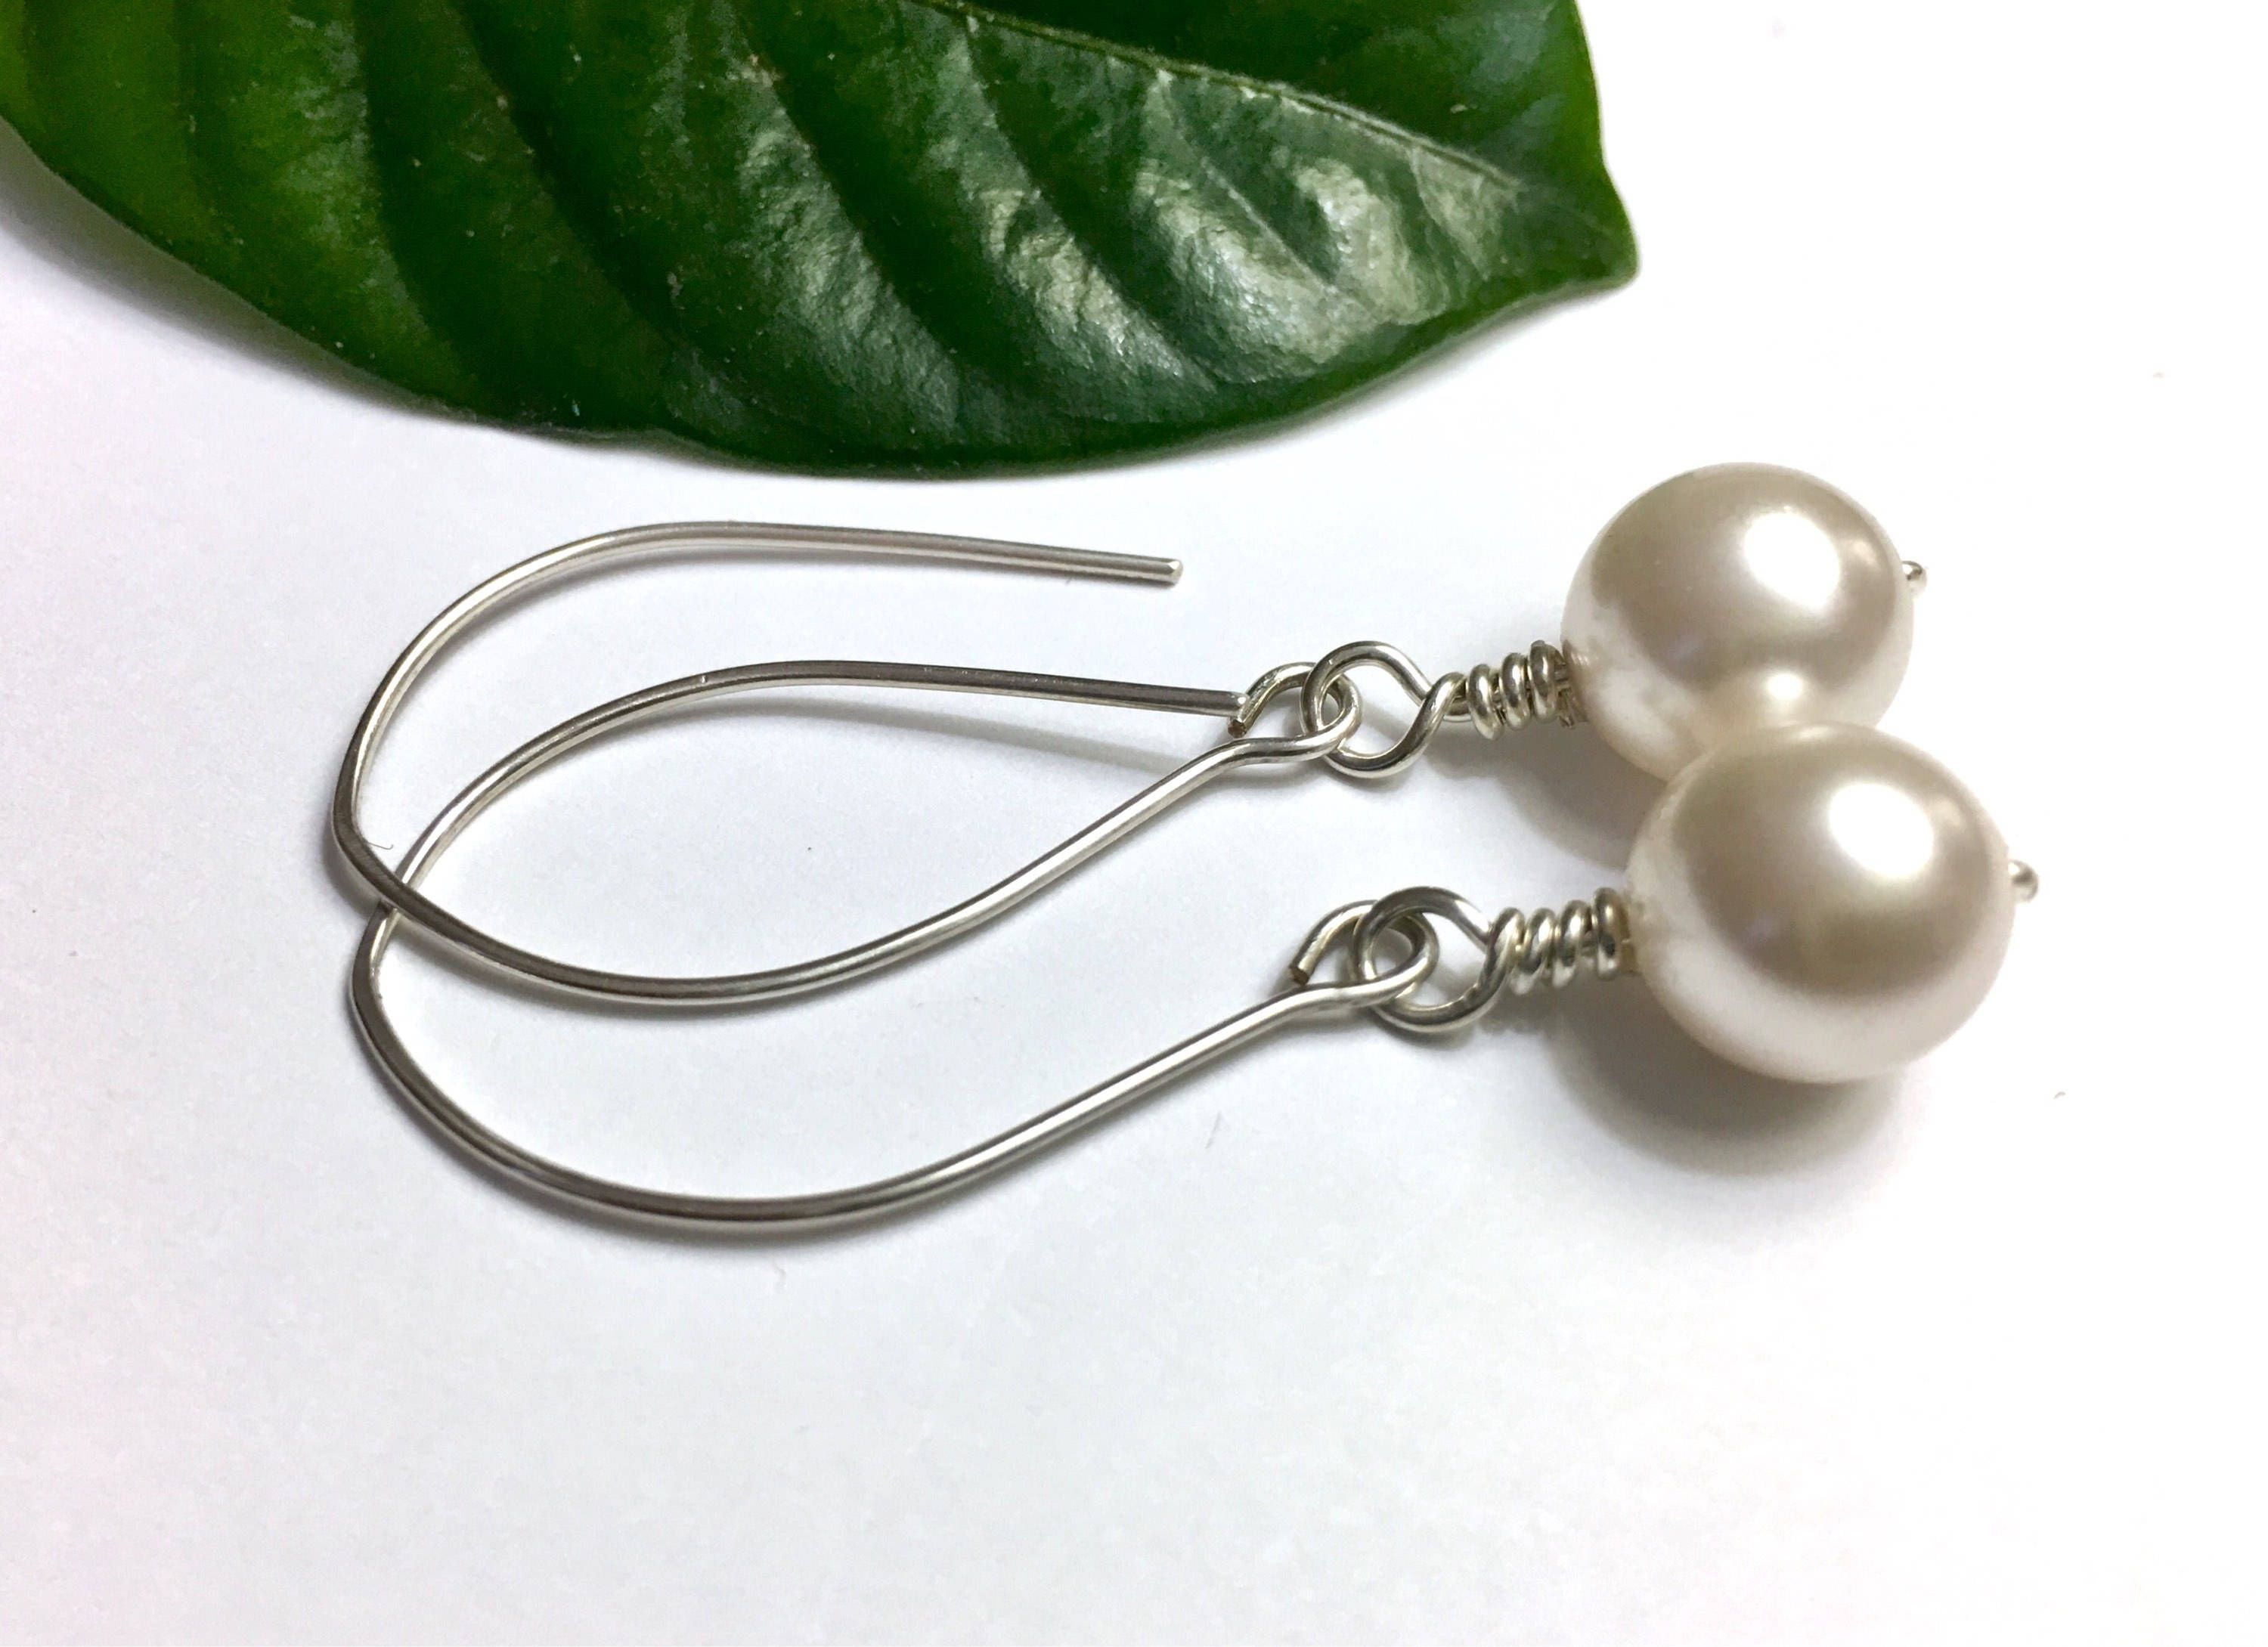 Modern pearl earrings easter gift for her long 925 silver earrings modern pearl earrings easter gift for her long 925 silver earrings large white pearl earrings girlfriend negle